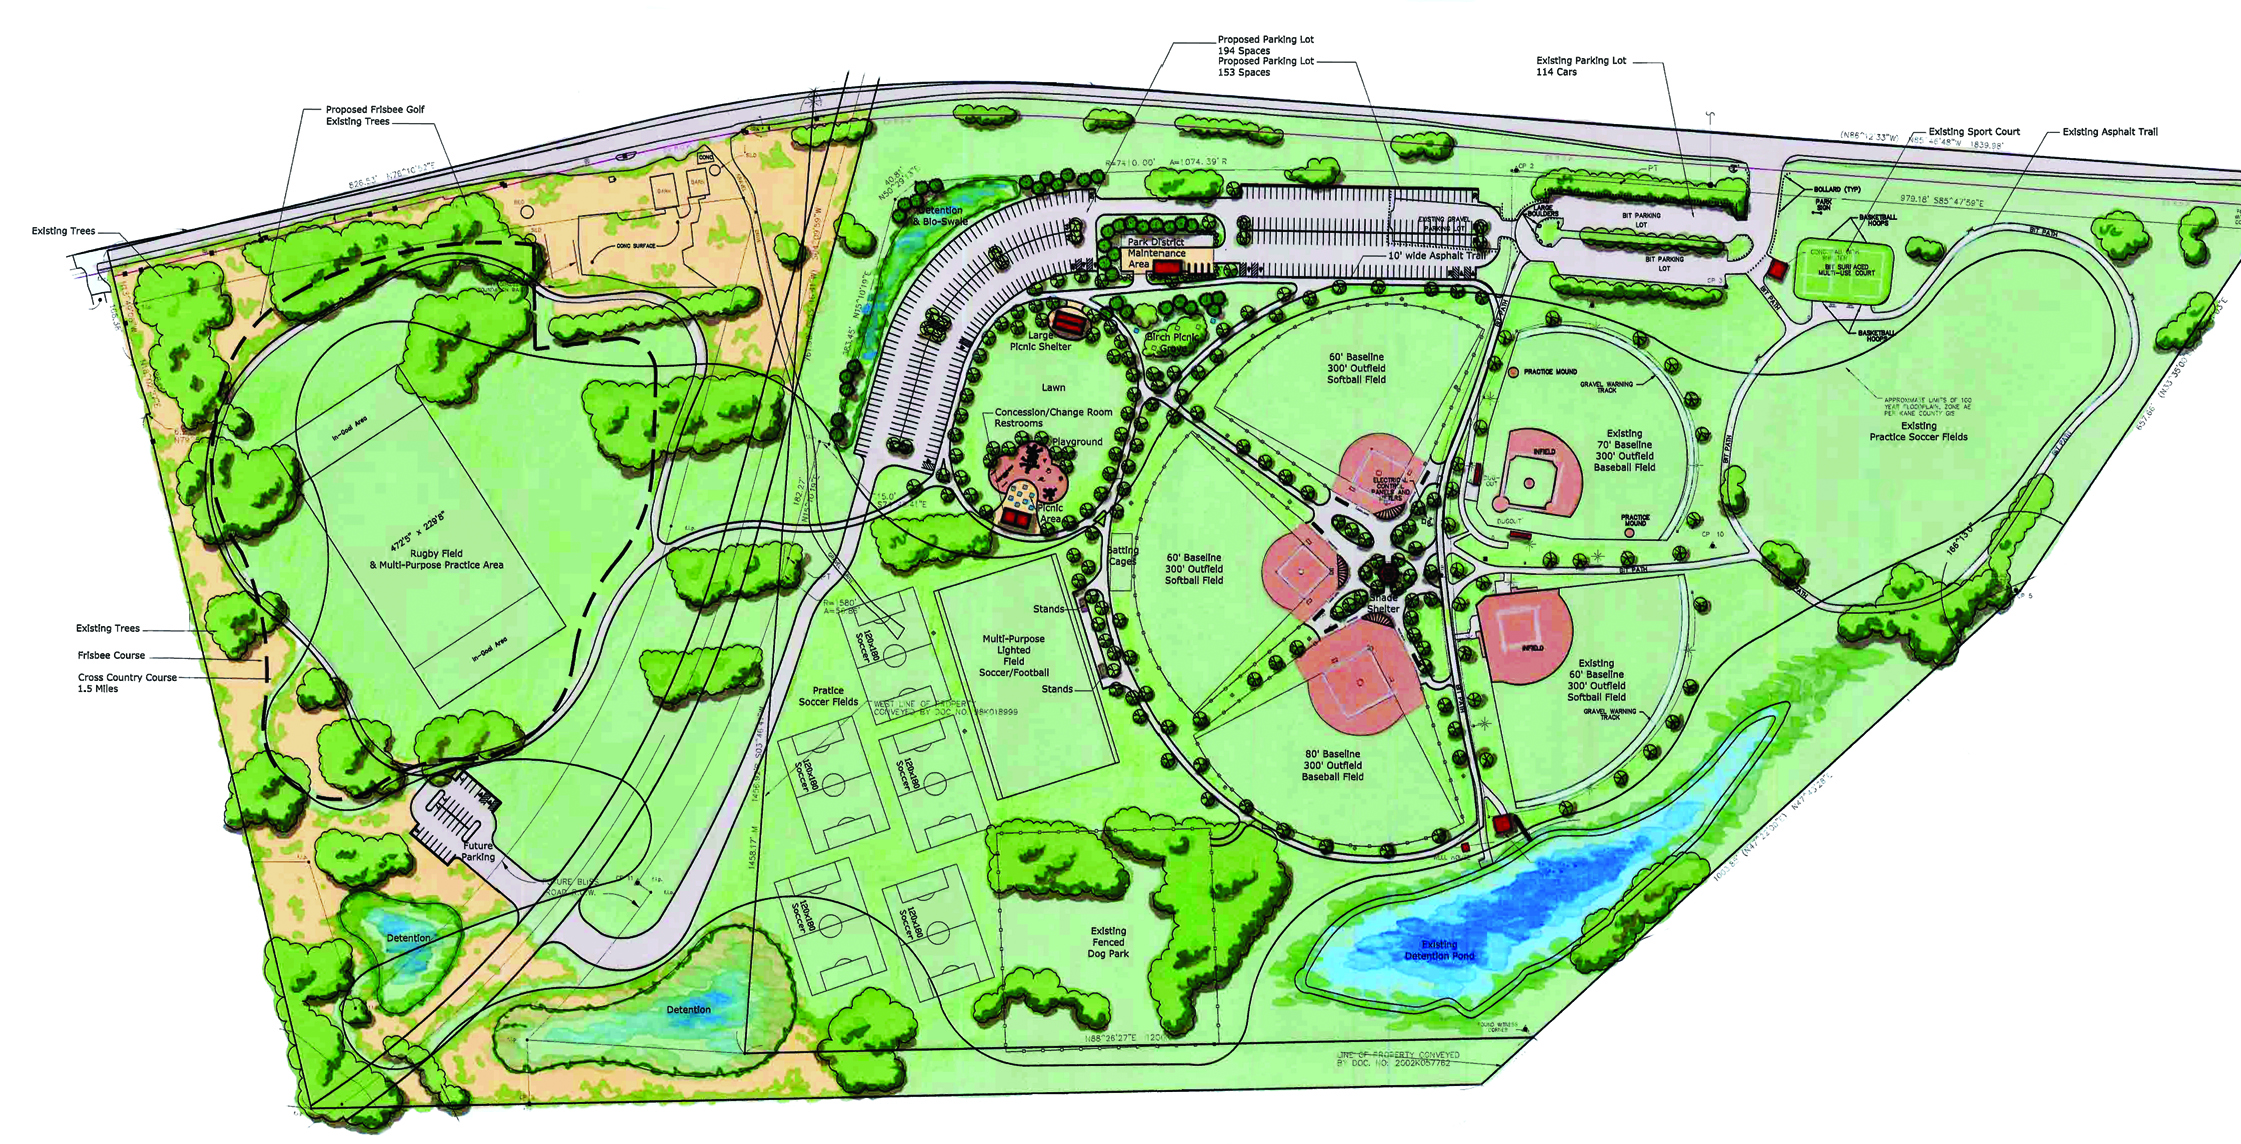 Sports Complex Plan R - West Main Park Master Plan - Upland Design